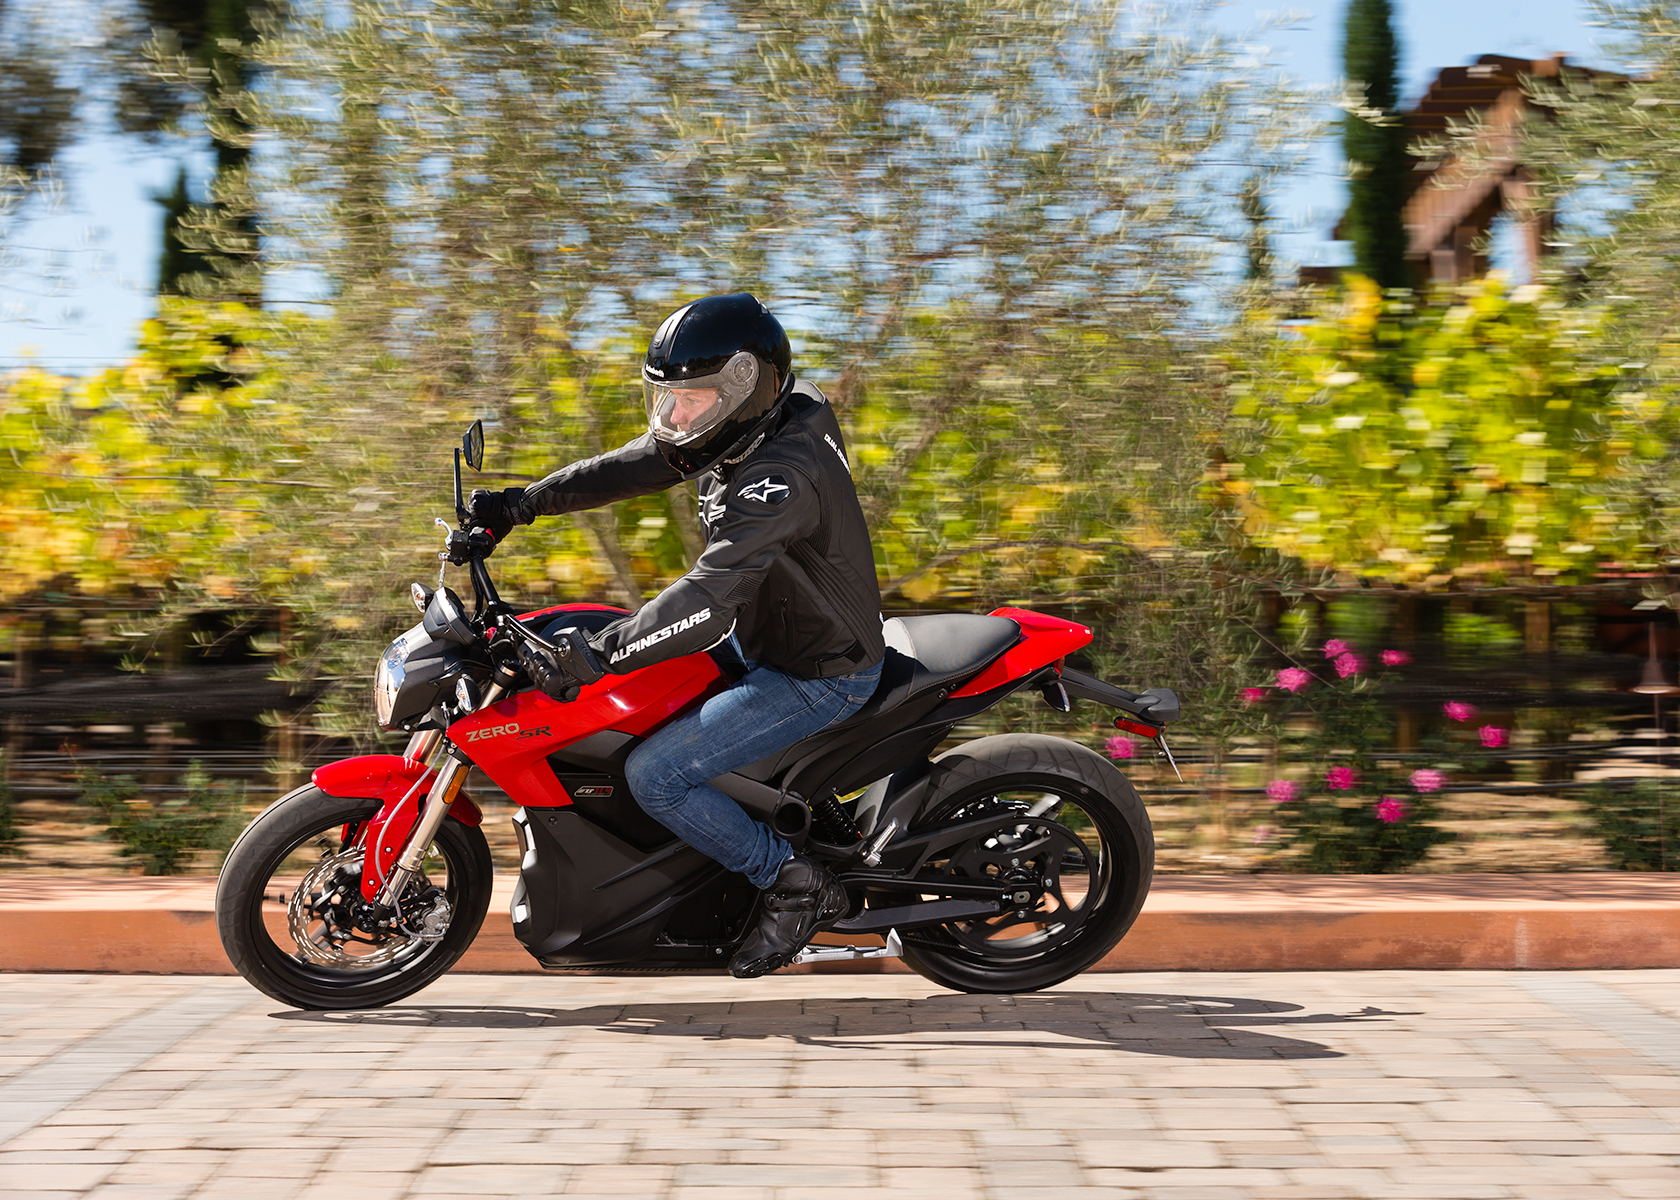 2014 Zero SR Electric Motorcycle: